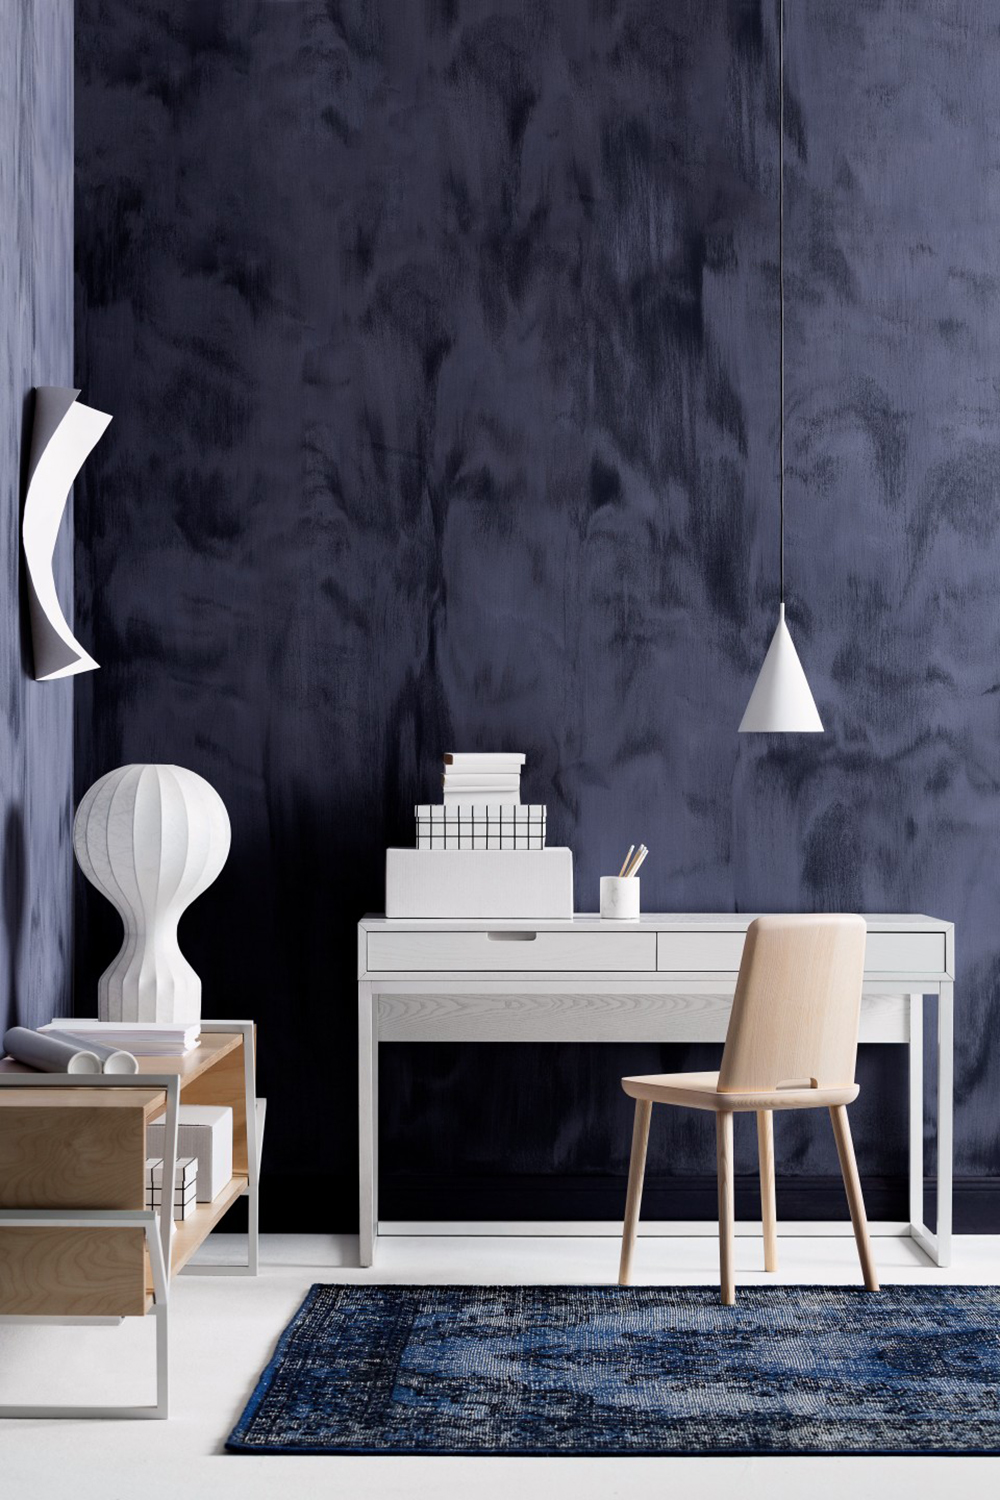 Gravity surface by Haymes Paint adds an elegant texture to every room - 35 ideas for blue wall colour in home decoration | Aliz's Wonderland